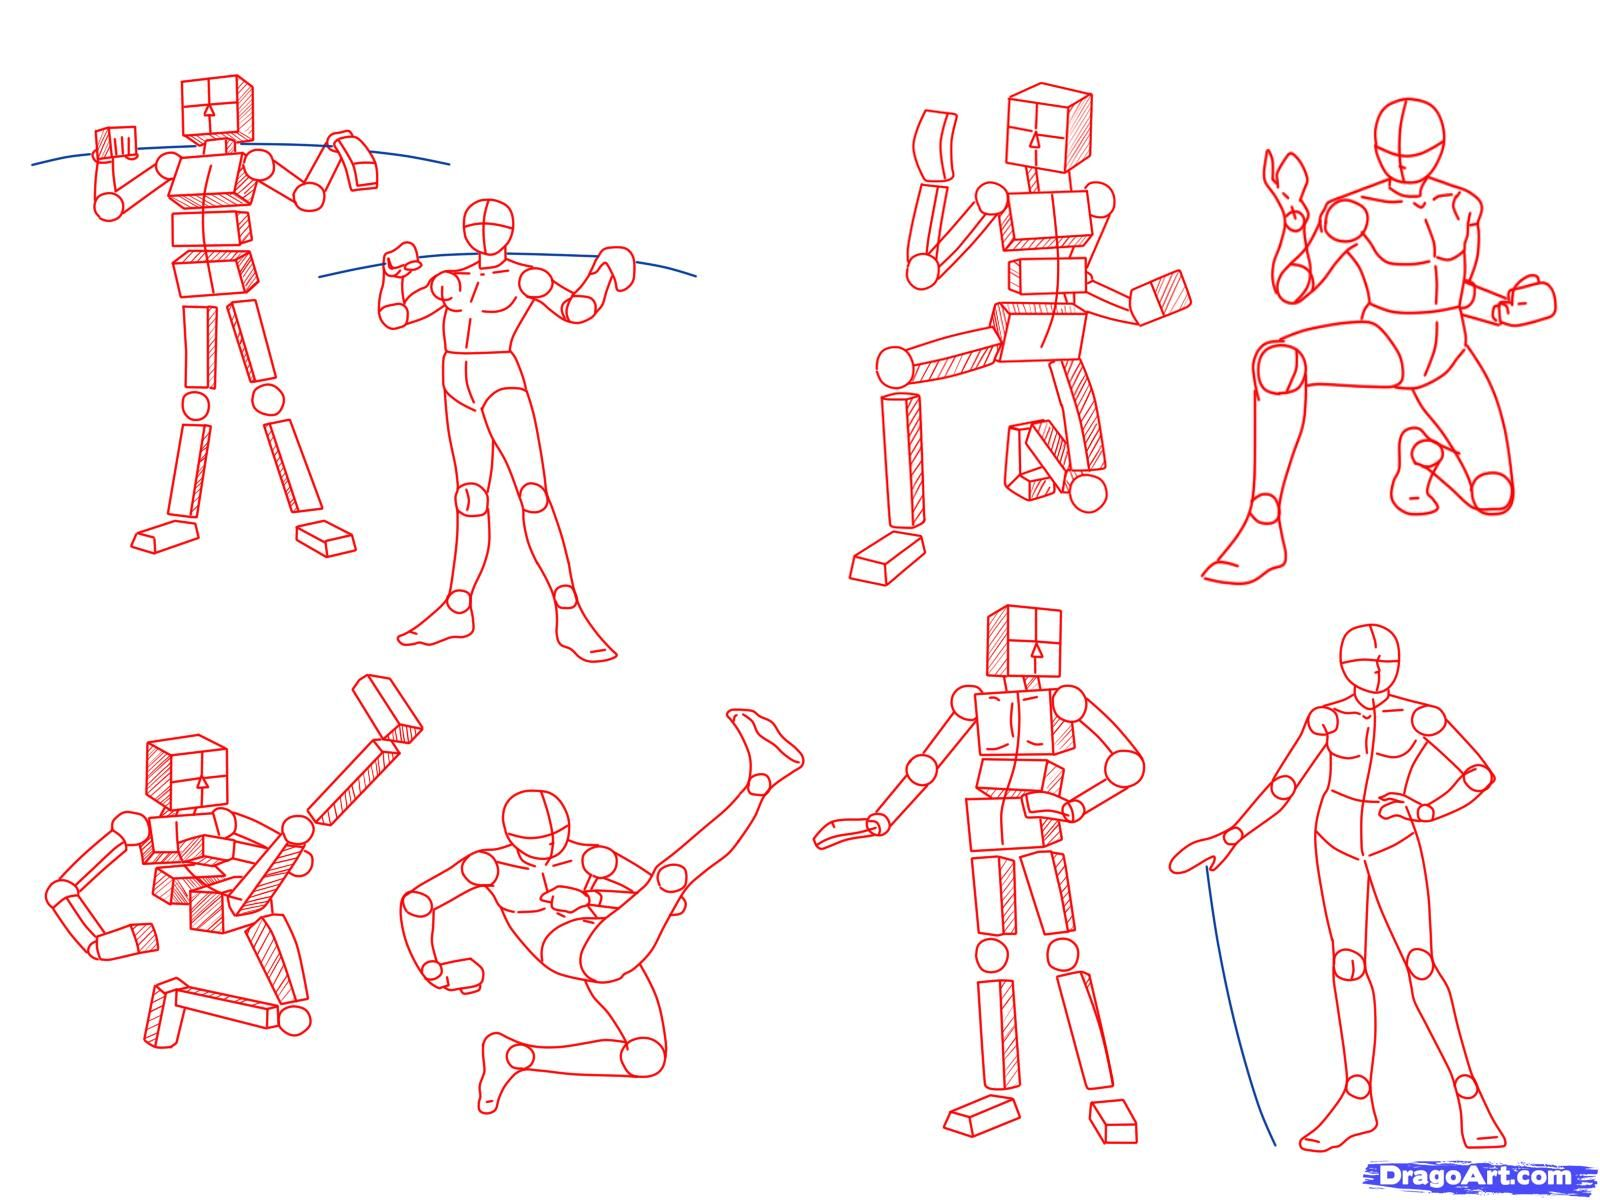 How To Draw Anime Poses  How To Draw Anime Poses Step 2